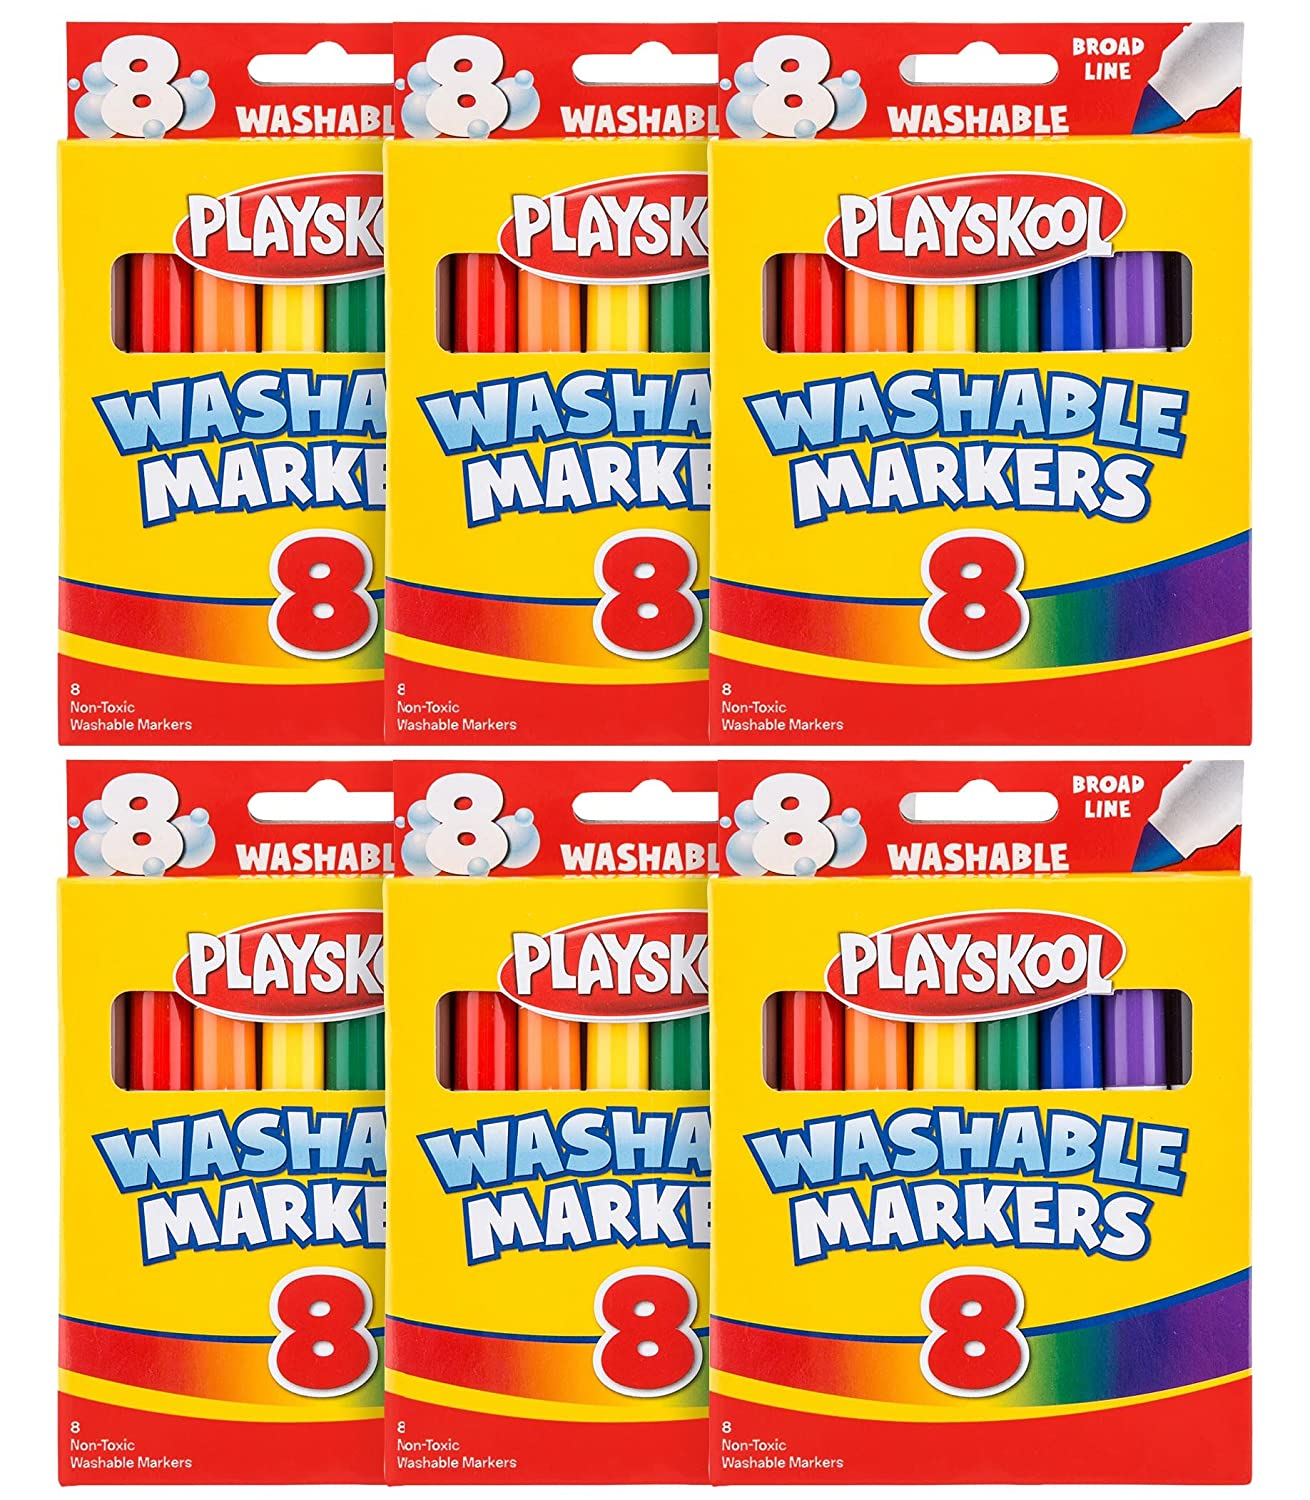 6-Pack Case Playskool 8-count Colors Broad Line Washable Markers Leap Year Publishing